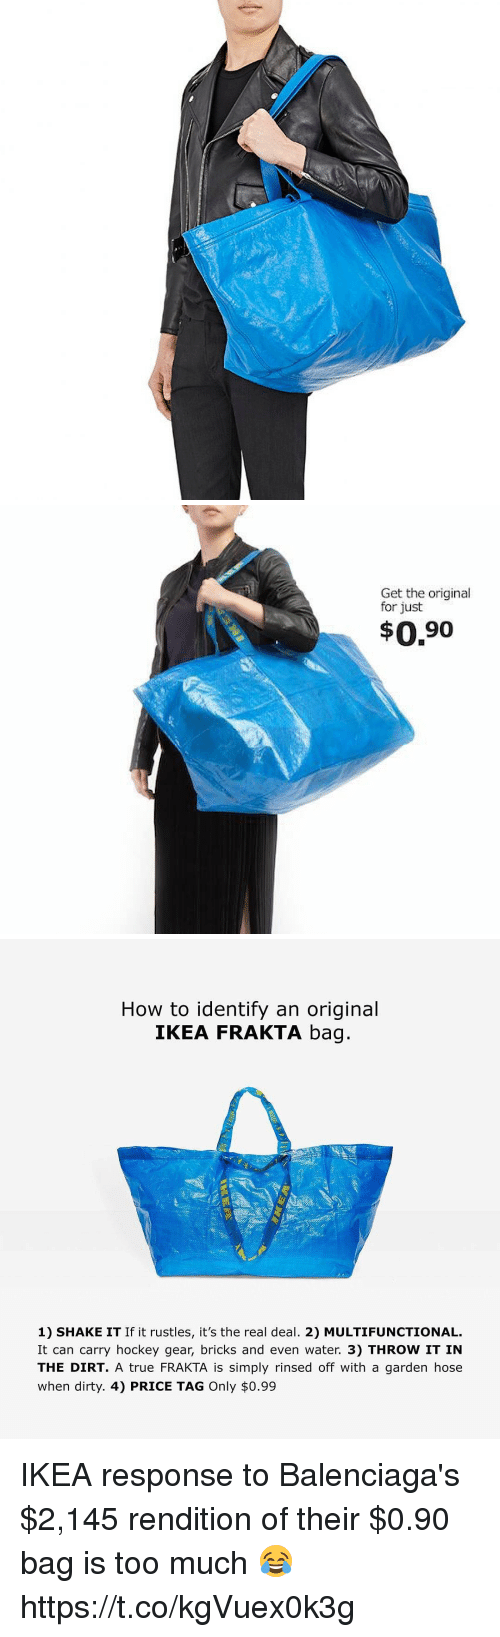 Funny, Hockey, and Ikea: Get the original  for just  $0.90   How to identify an original  IKEA FRAKTA bag  1) SHAKE IT If it rustles, it's the real deal. 2) MULTIFUNCTIONAL.  It can carry hockey gear, bricks and even water. 3) THROW IT IN  THE DIRT. A true FRAKTA is simply rinsed off with a garden hose  when dirty. 4) PRICE TAG Only $0.99 IKEA response to Balenciaga's $2,145 rendition of their $0.90 bag is too much 😂 https://t.co/kgVuex0k3g